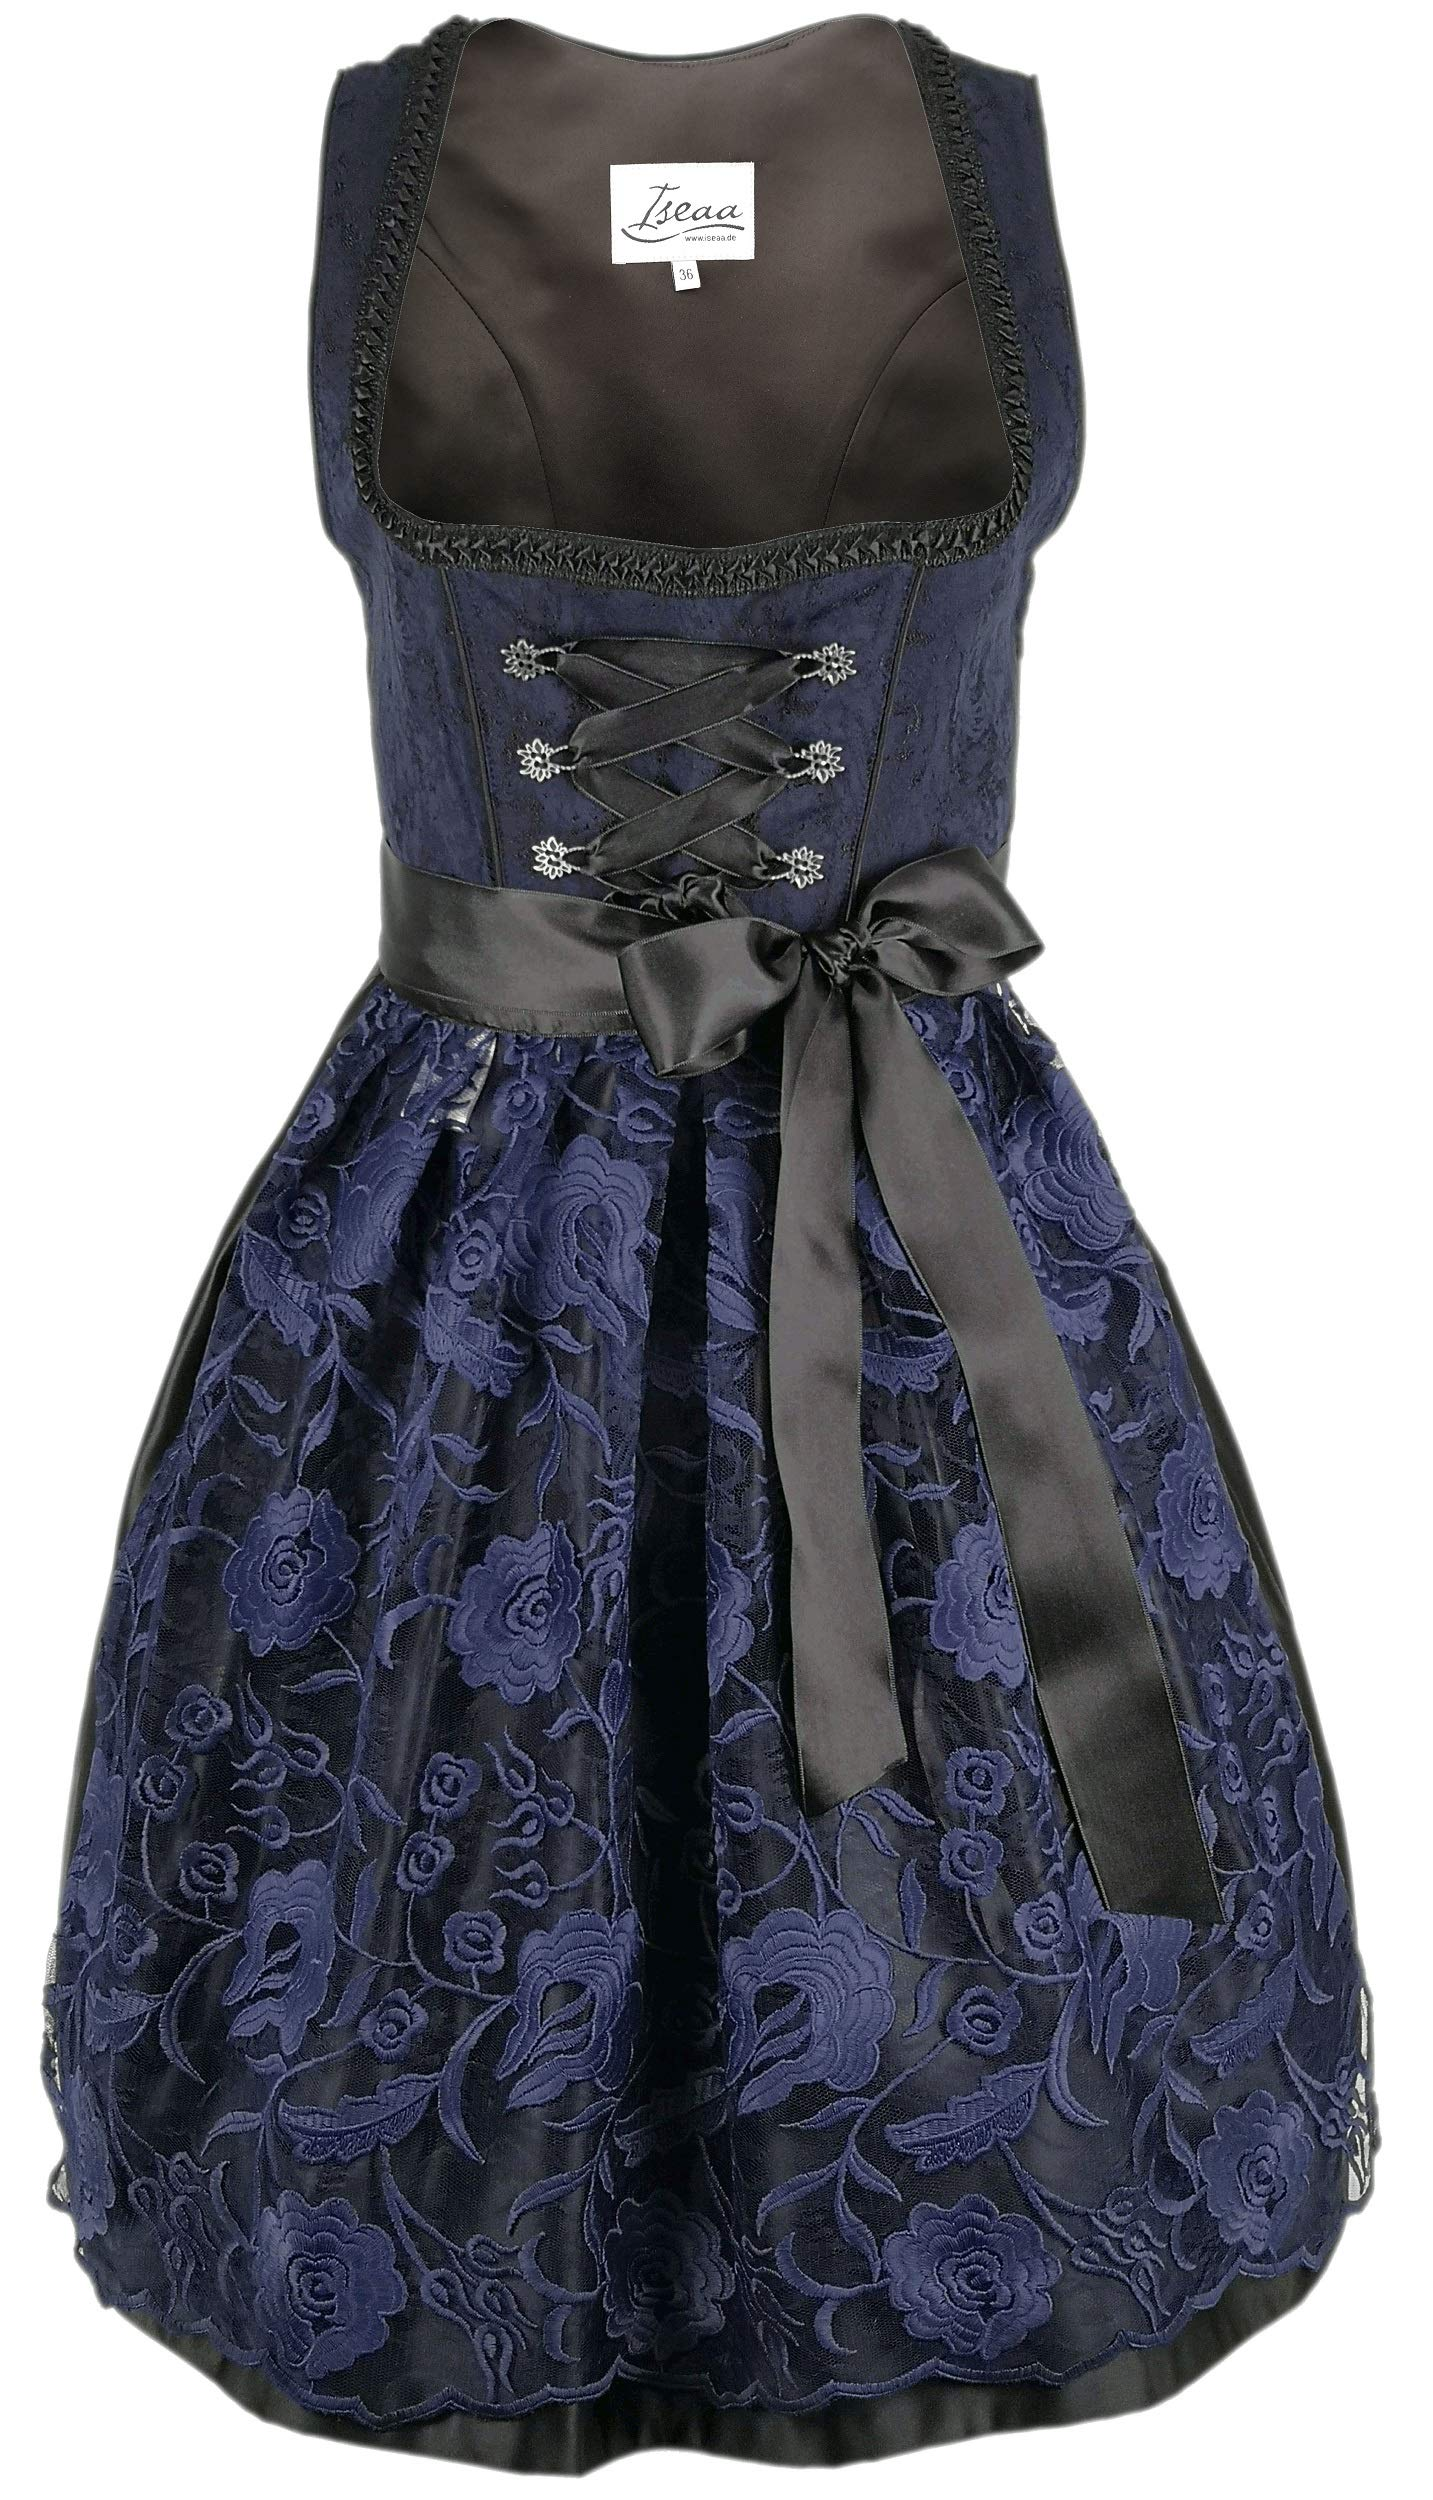 Dirndl 2 pcs.Traditional Dress Lena in Dark Blue with lace Apron 42 by Iseaa